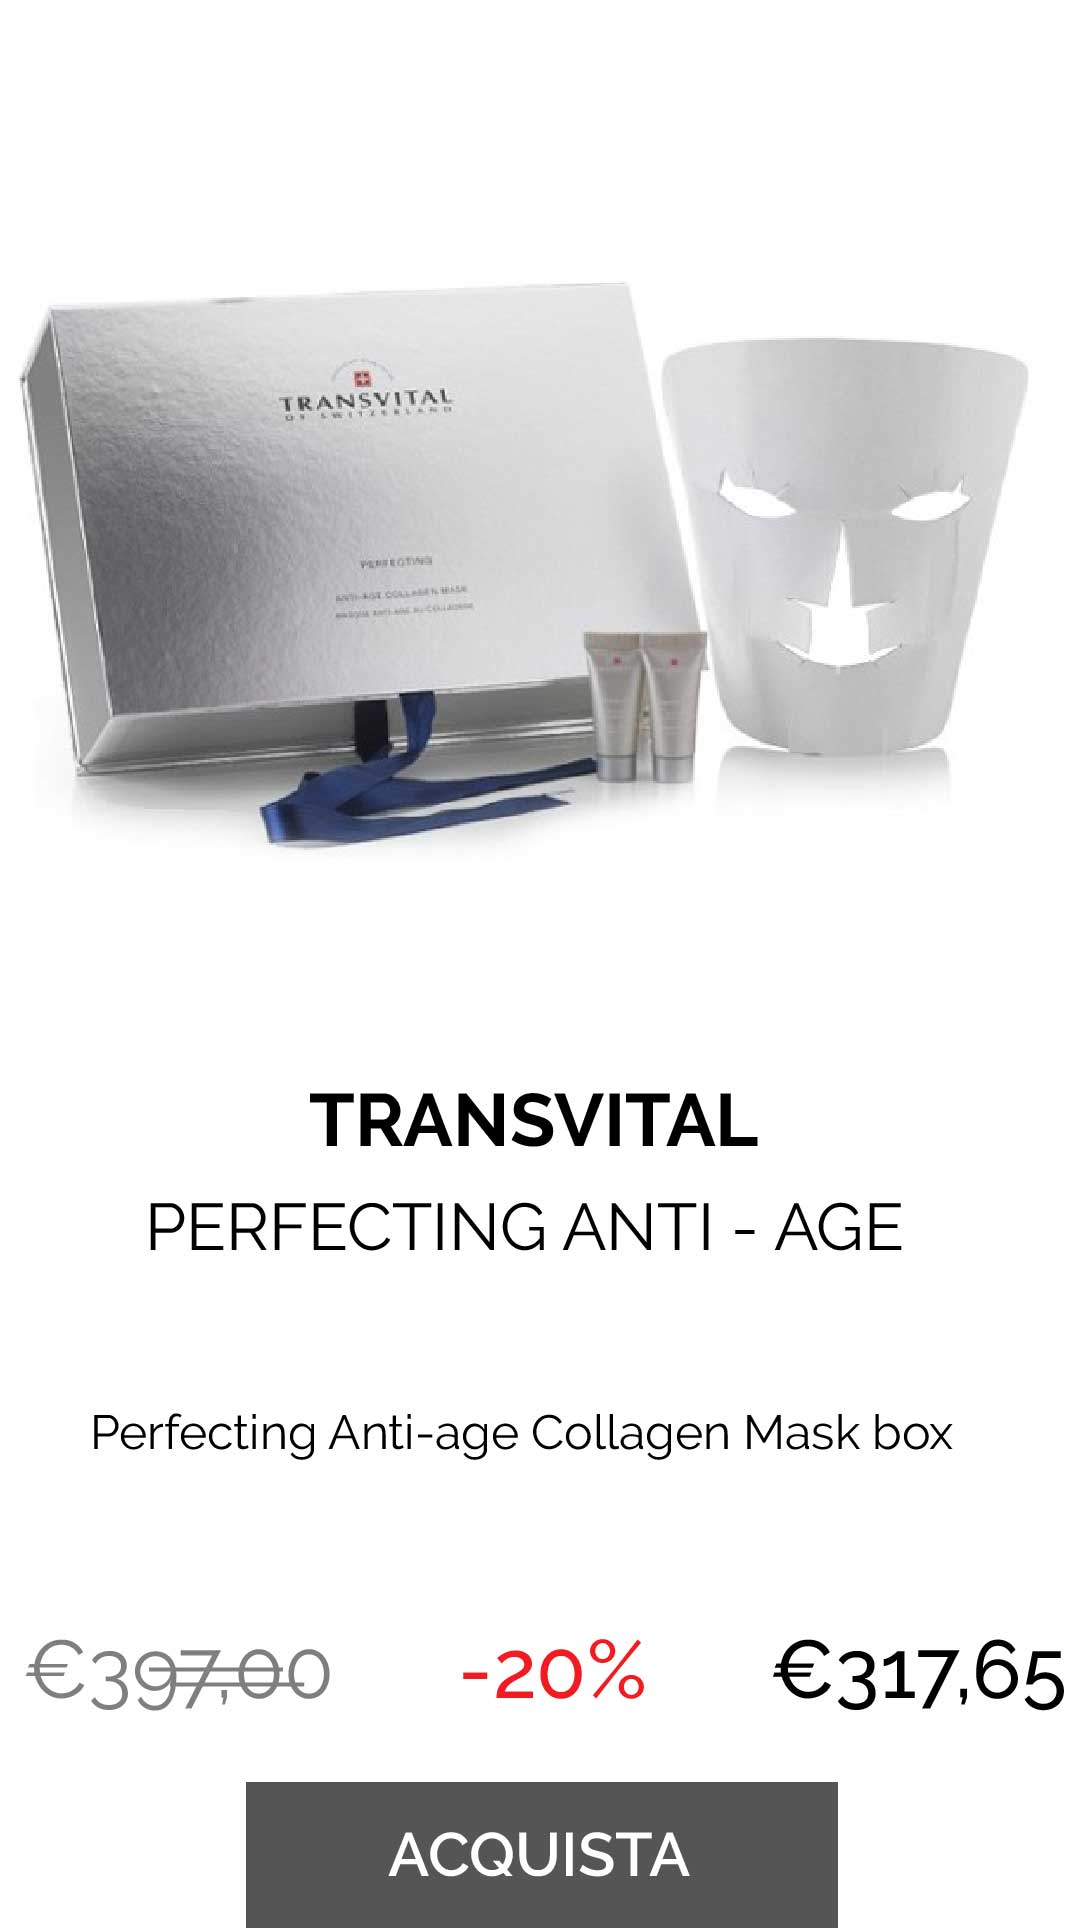 TRANSVITAL - PERFECTING COLLAGEN MASK BOX